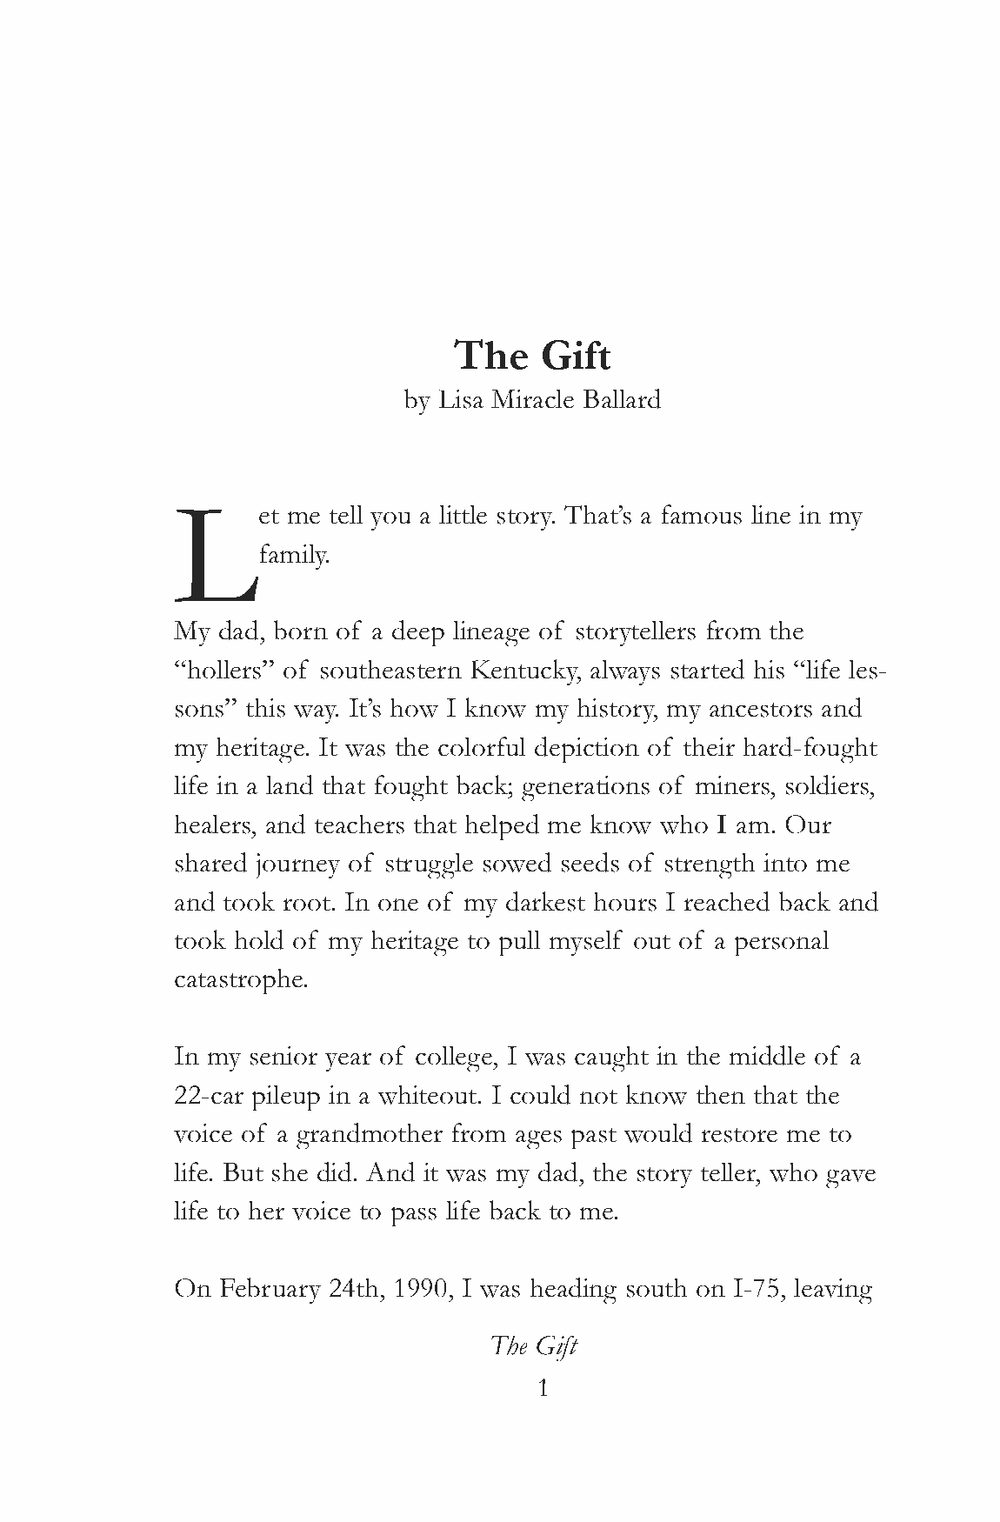 The Gift -  p1.png